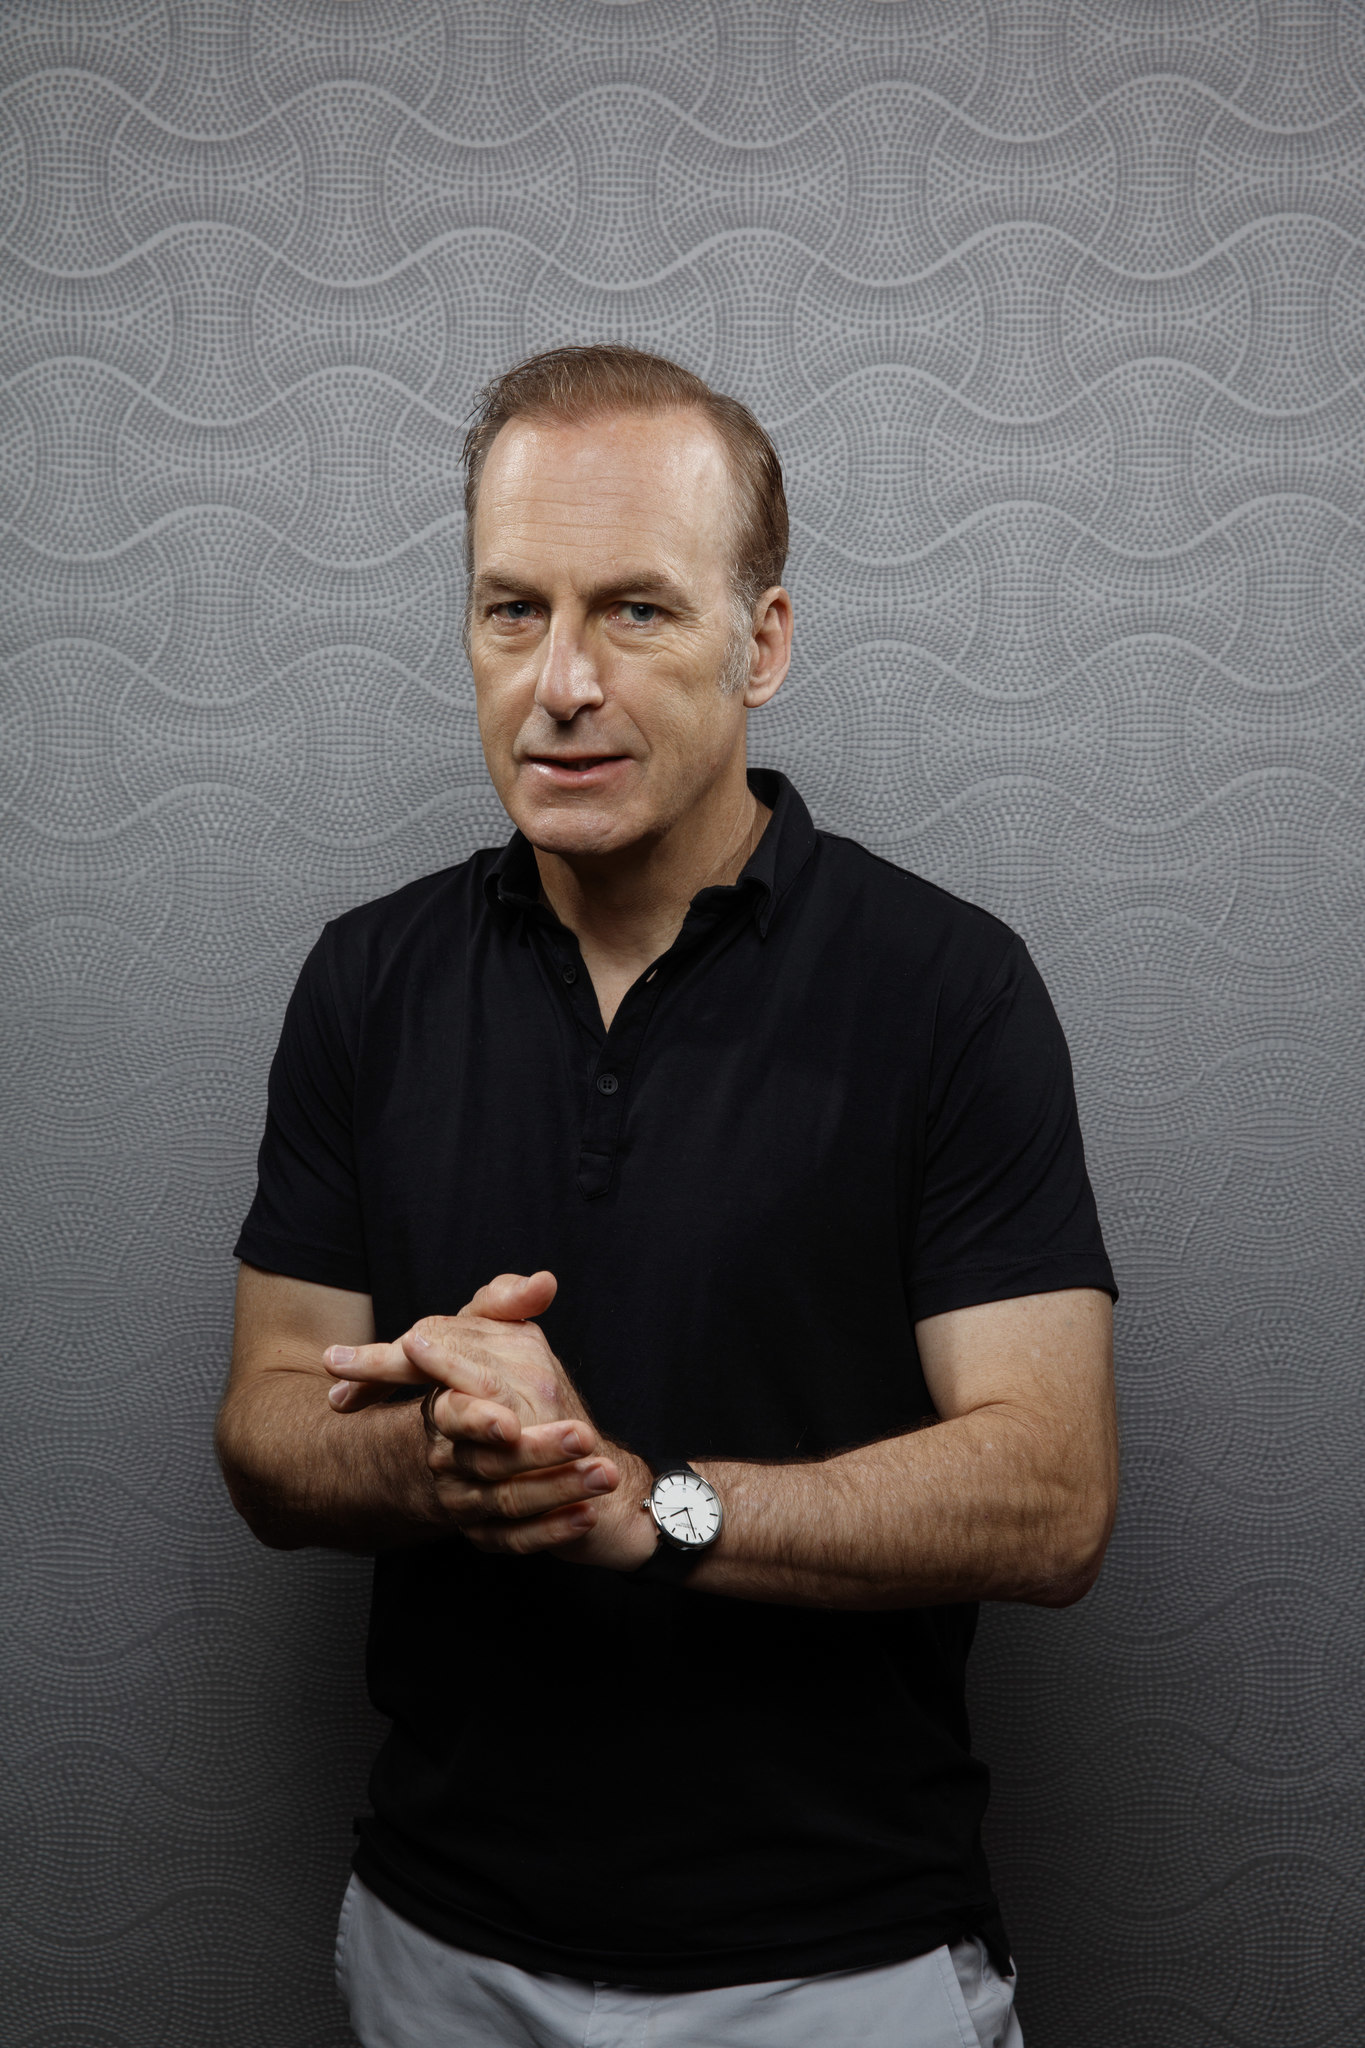 """SAN DIEGO, CALIF. -- JULY 19, 2018-- Bob Odenkirk from the television series """"Better Call Saul,"""" ph"""